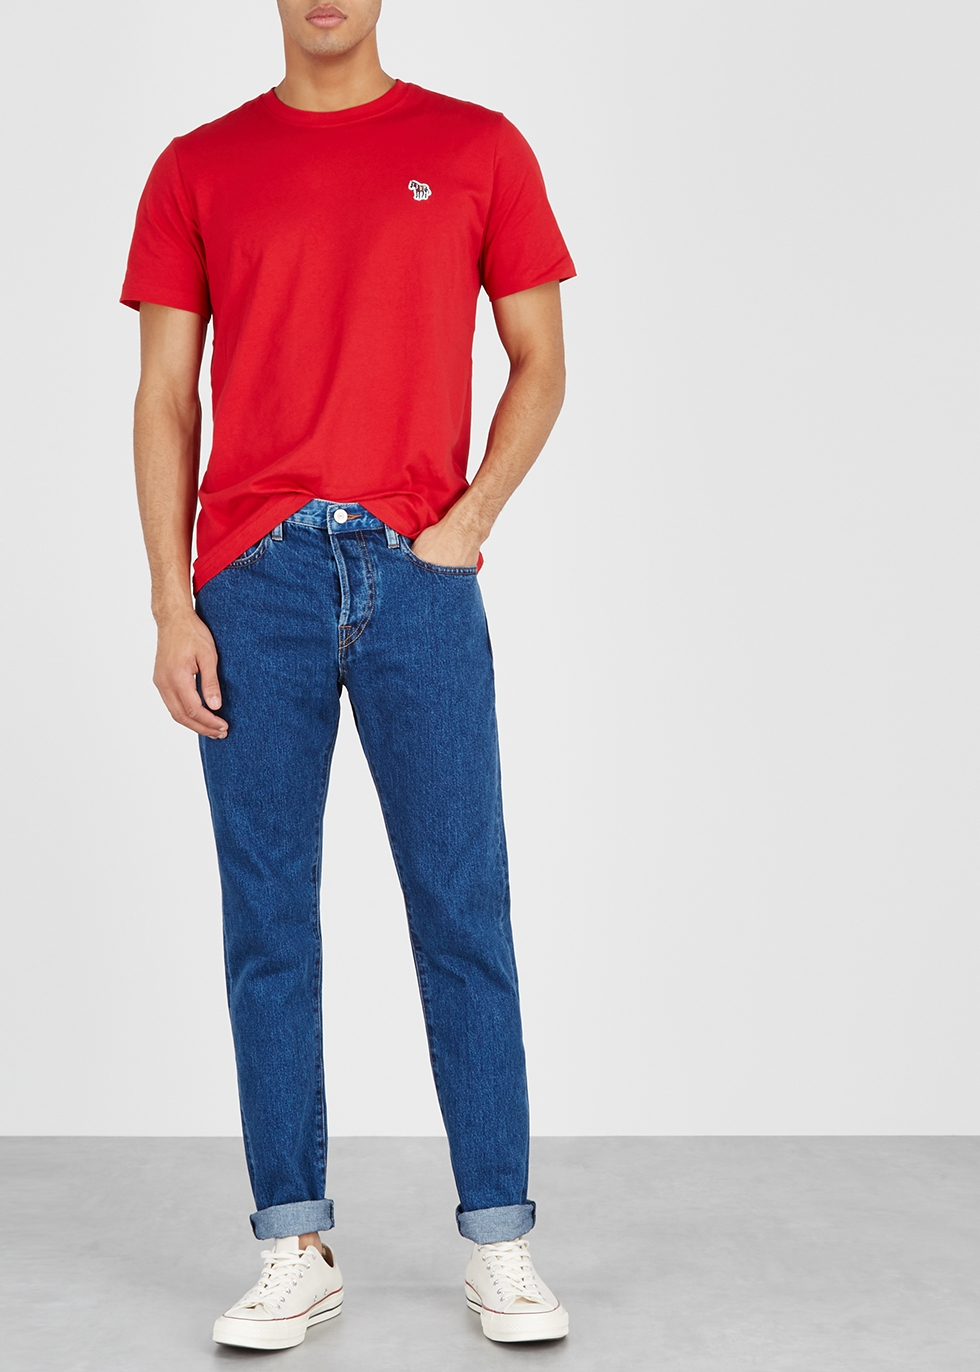 Red organic cotton T-shirt - PS by Paul Smith